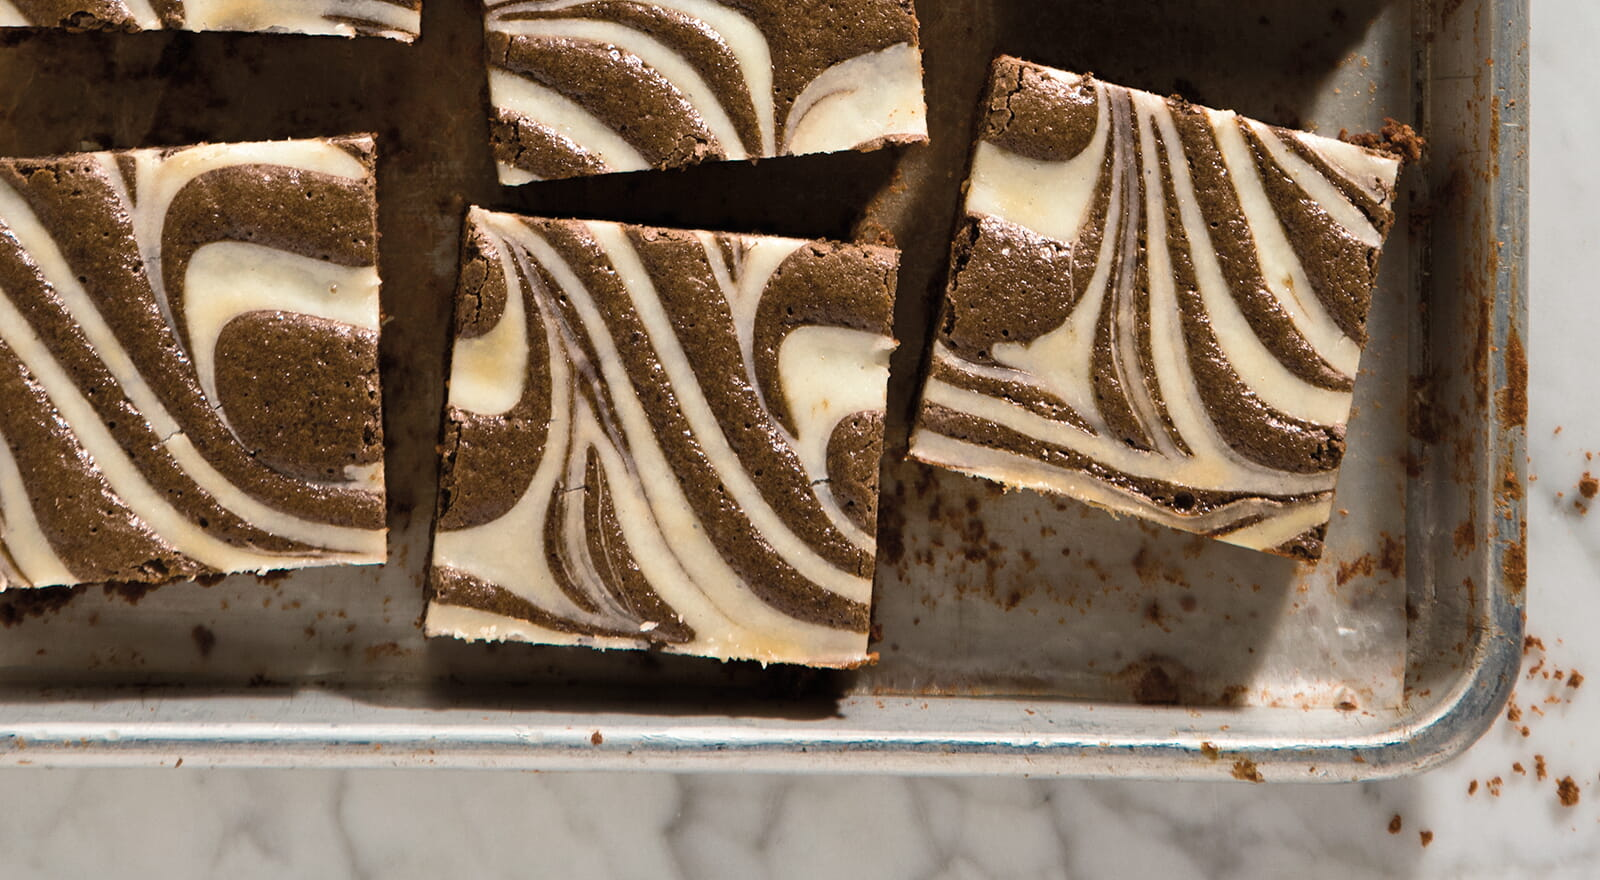 Read facts about brownies